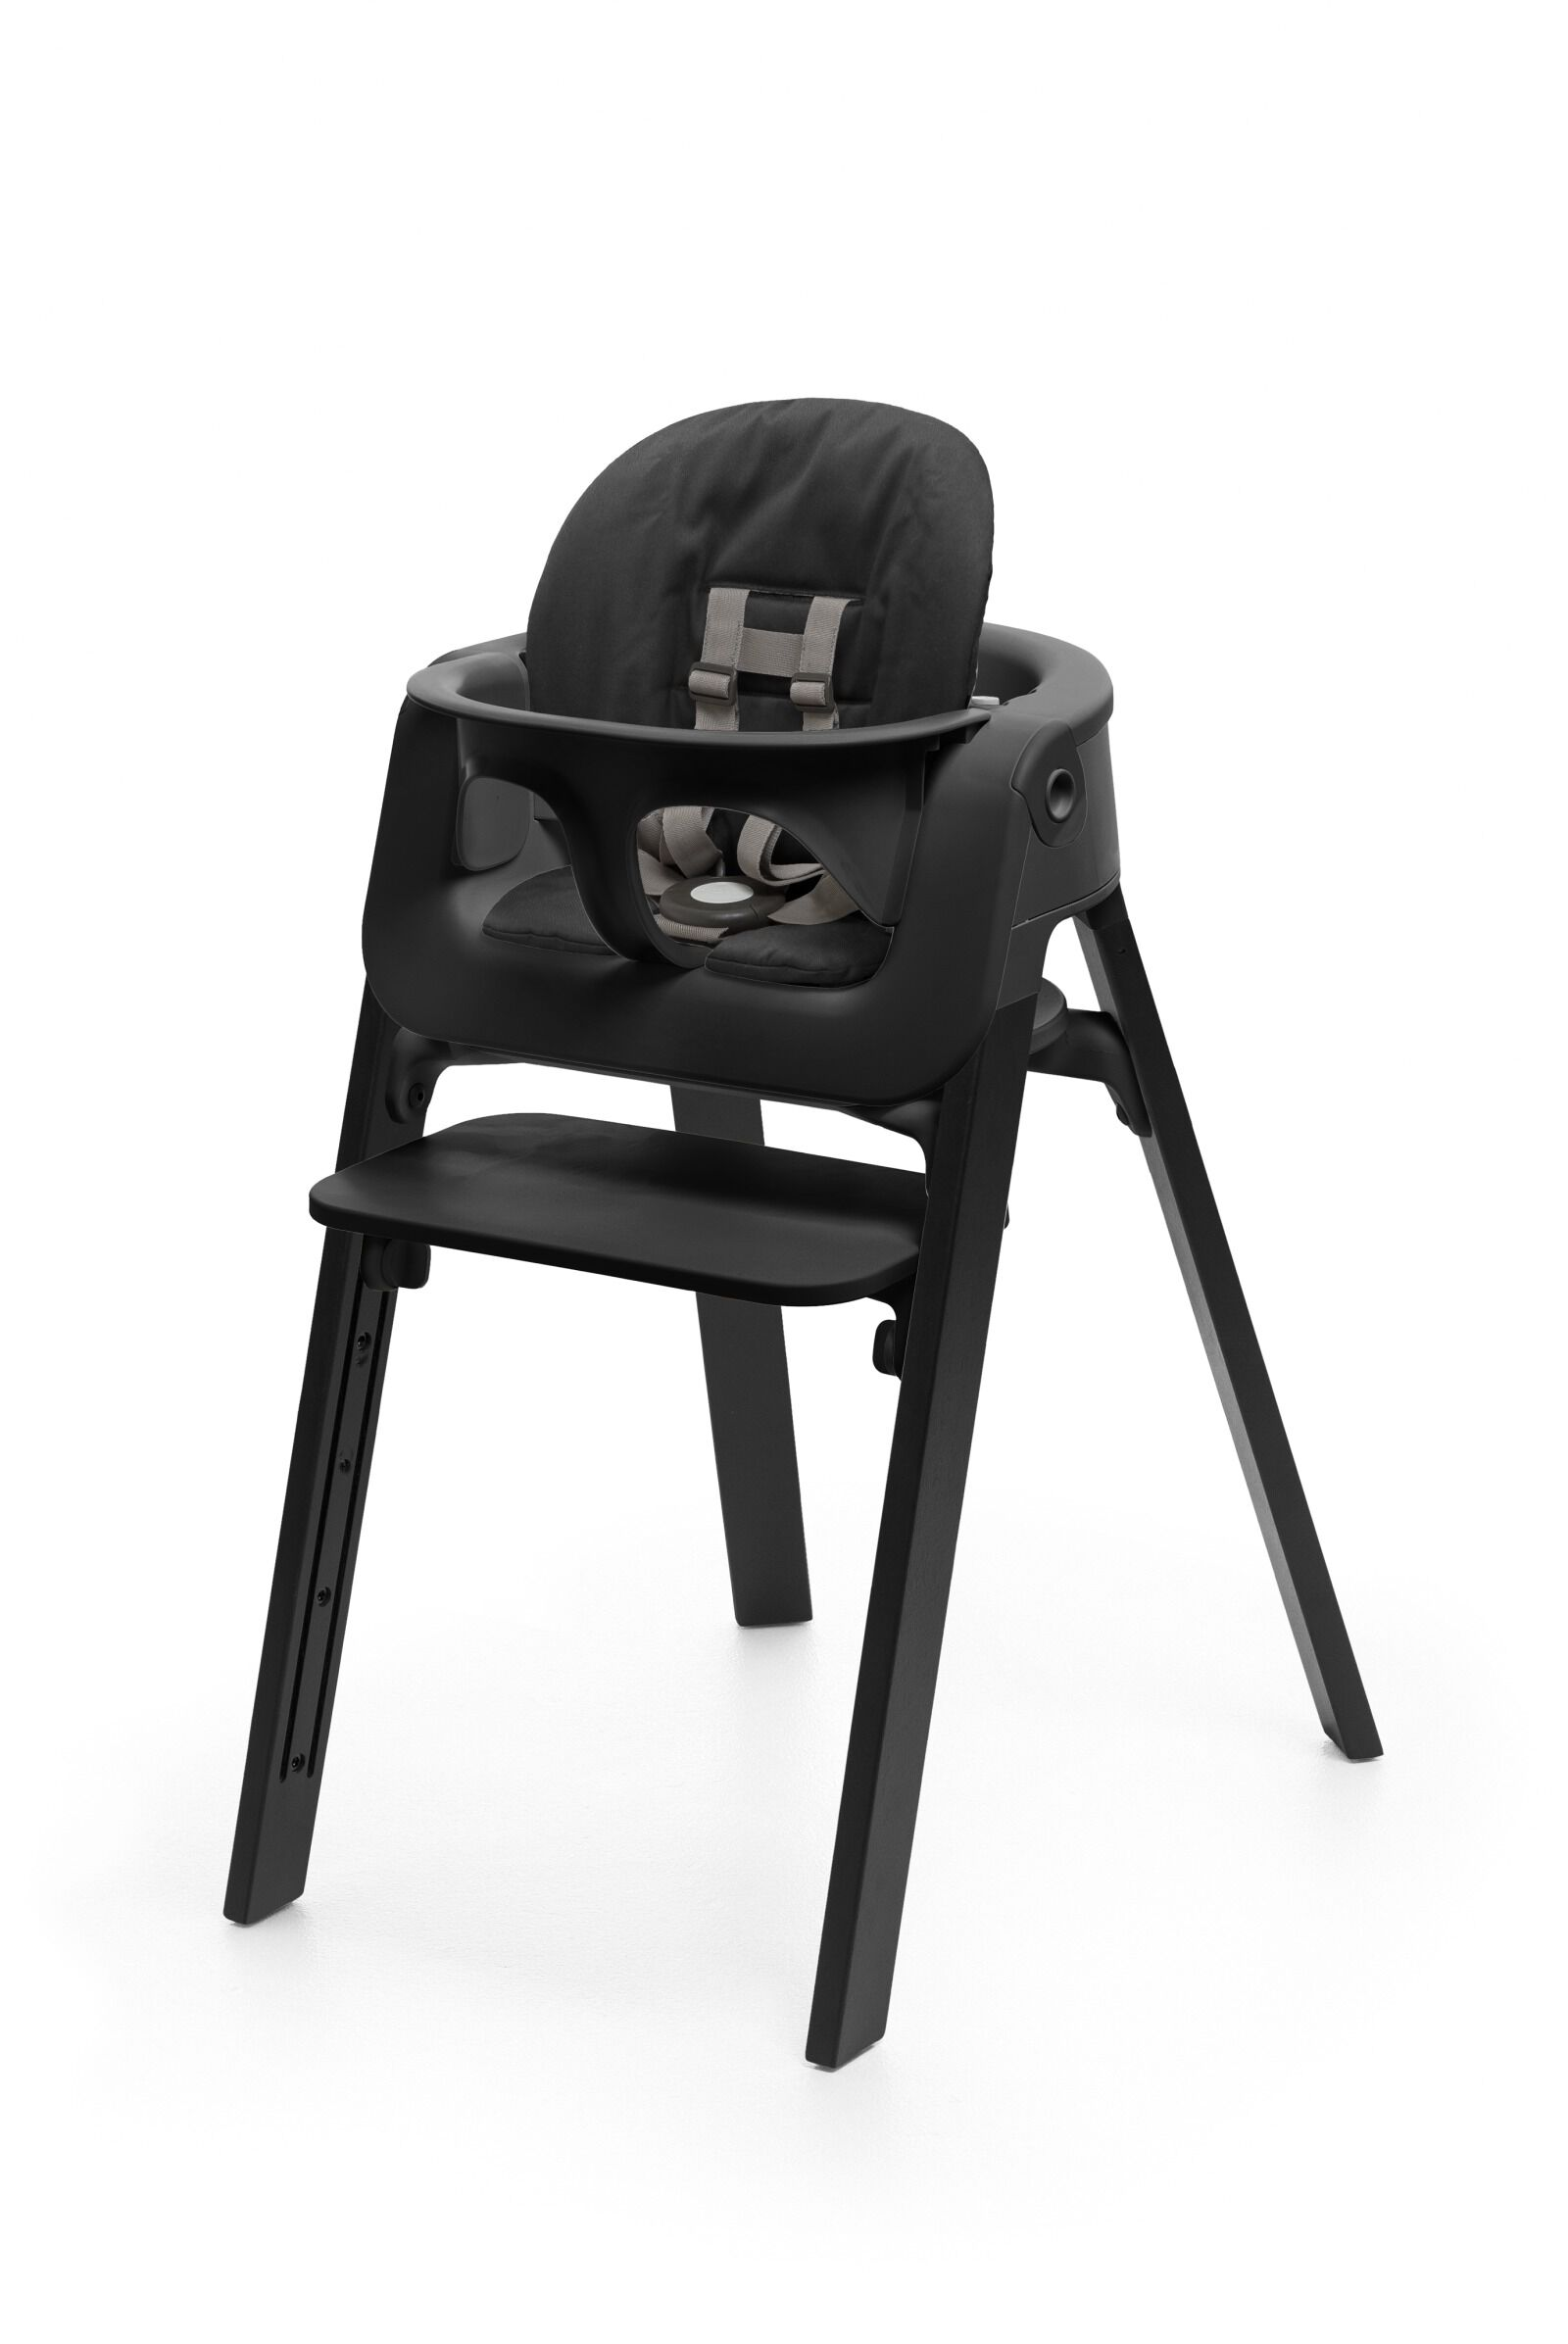 Stokke Steps Baby Set Cushion Greige Baby High Chairs